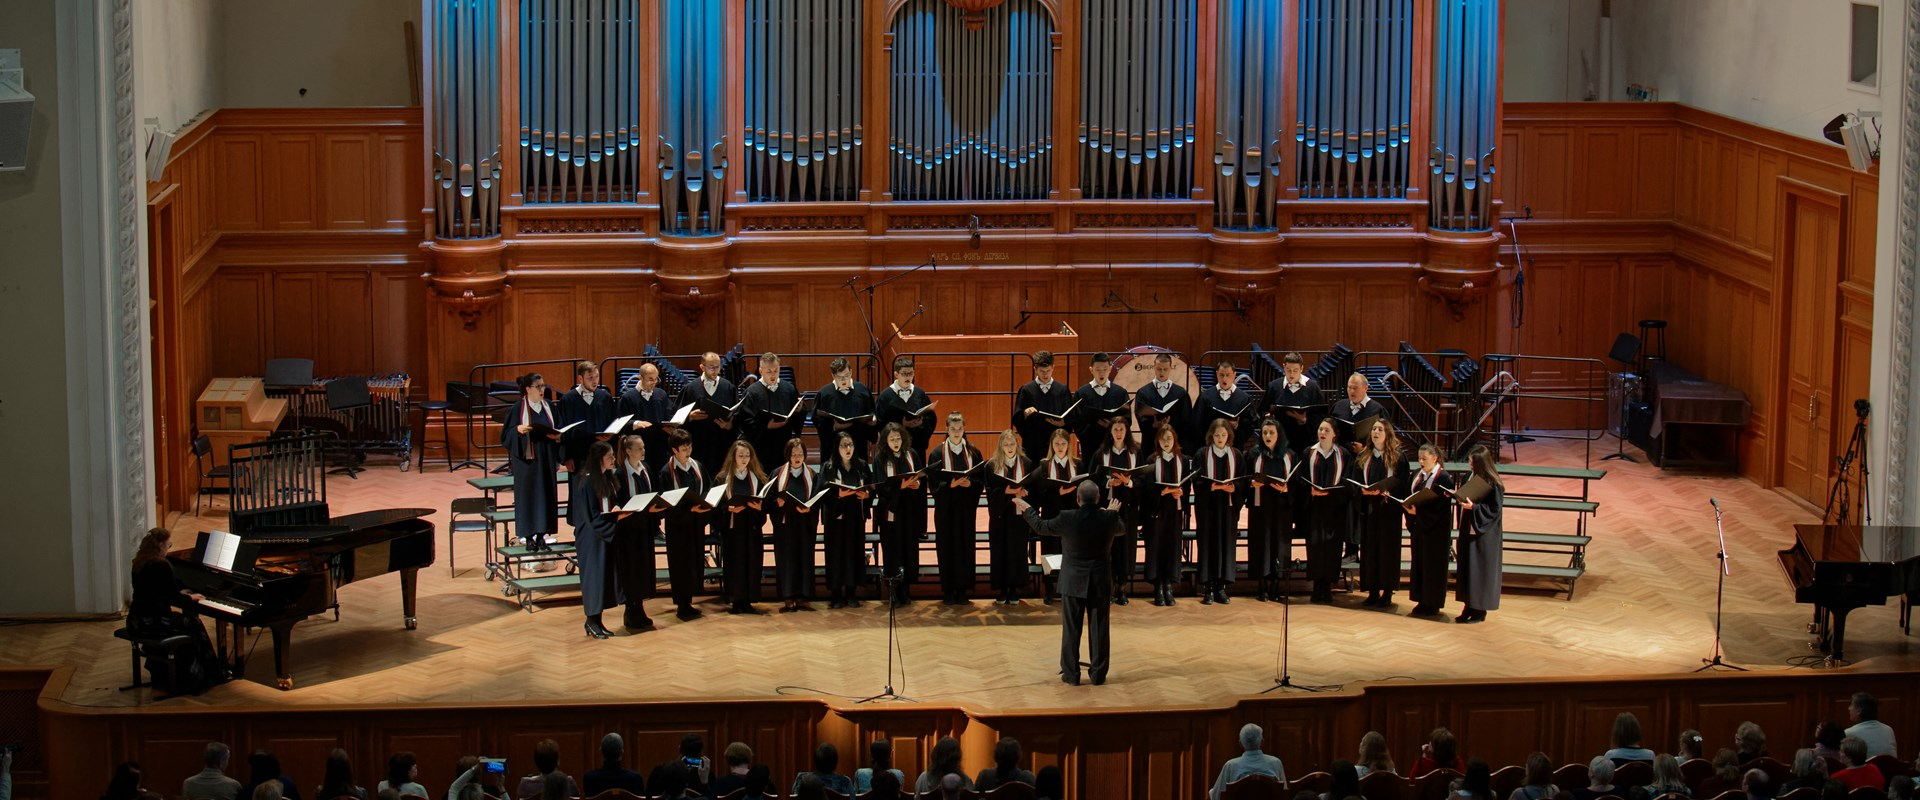 Professor Krotev and the AUBG Choir on the stage of Grand Hall of Moscow Conservatory of Music, Russia  <br />